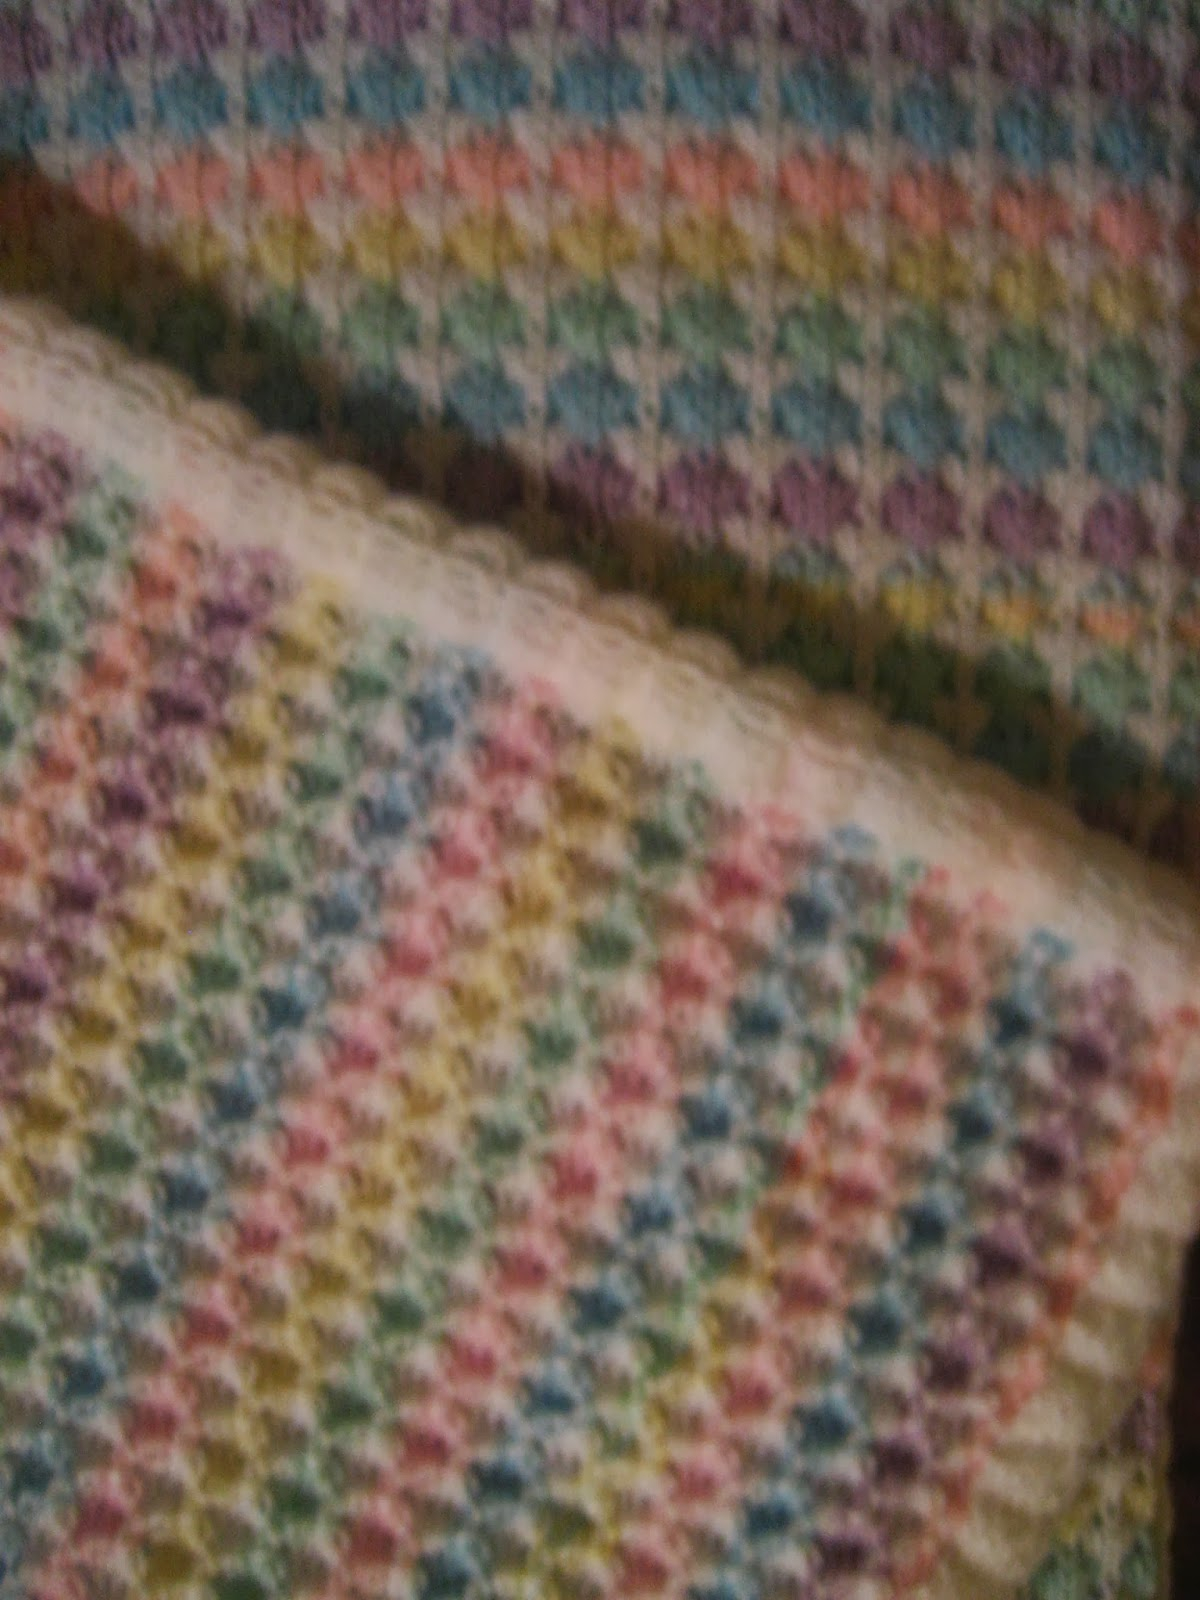 Machine Knit Baby Blanket Pattern Diana Natters On About Machine Knitting Another Ba Blanket